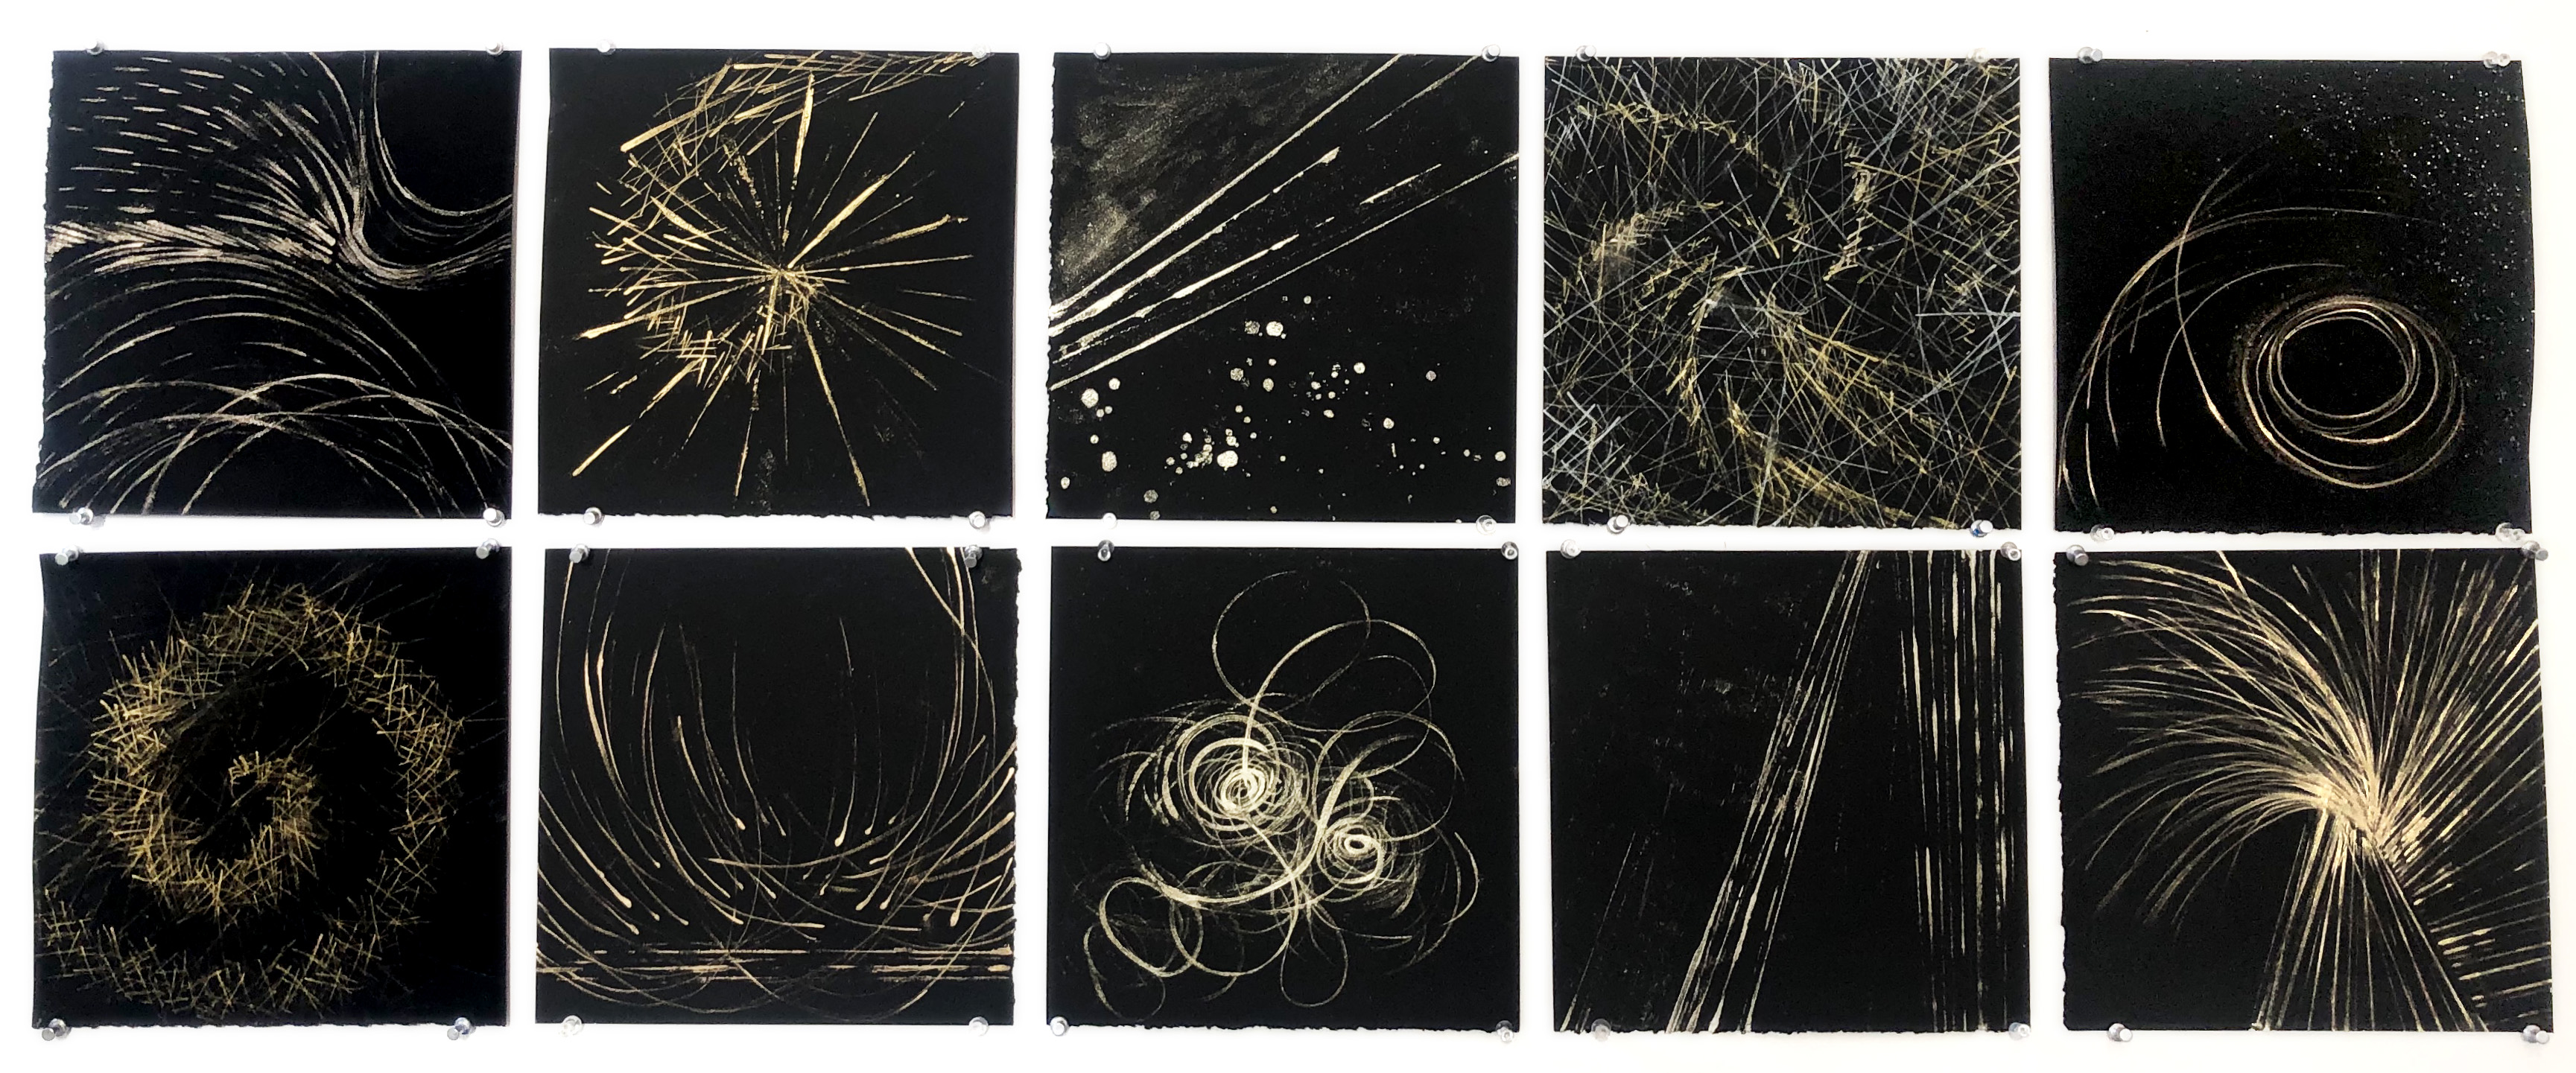 "Anne Patterson, 'Light Manifest', 2019, metallic ink on paper, 10"" x 10"" each"